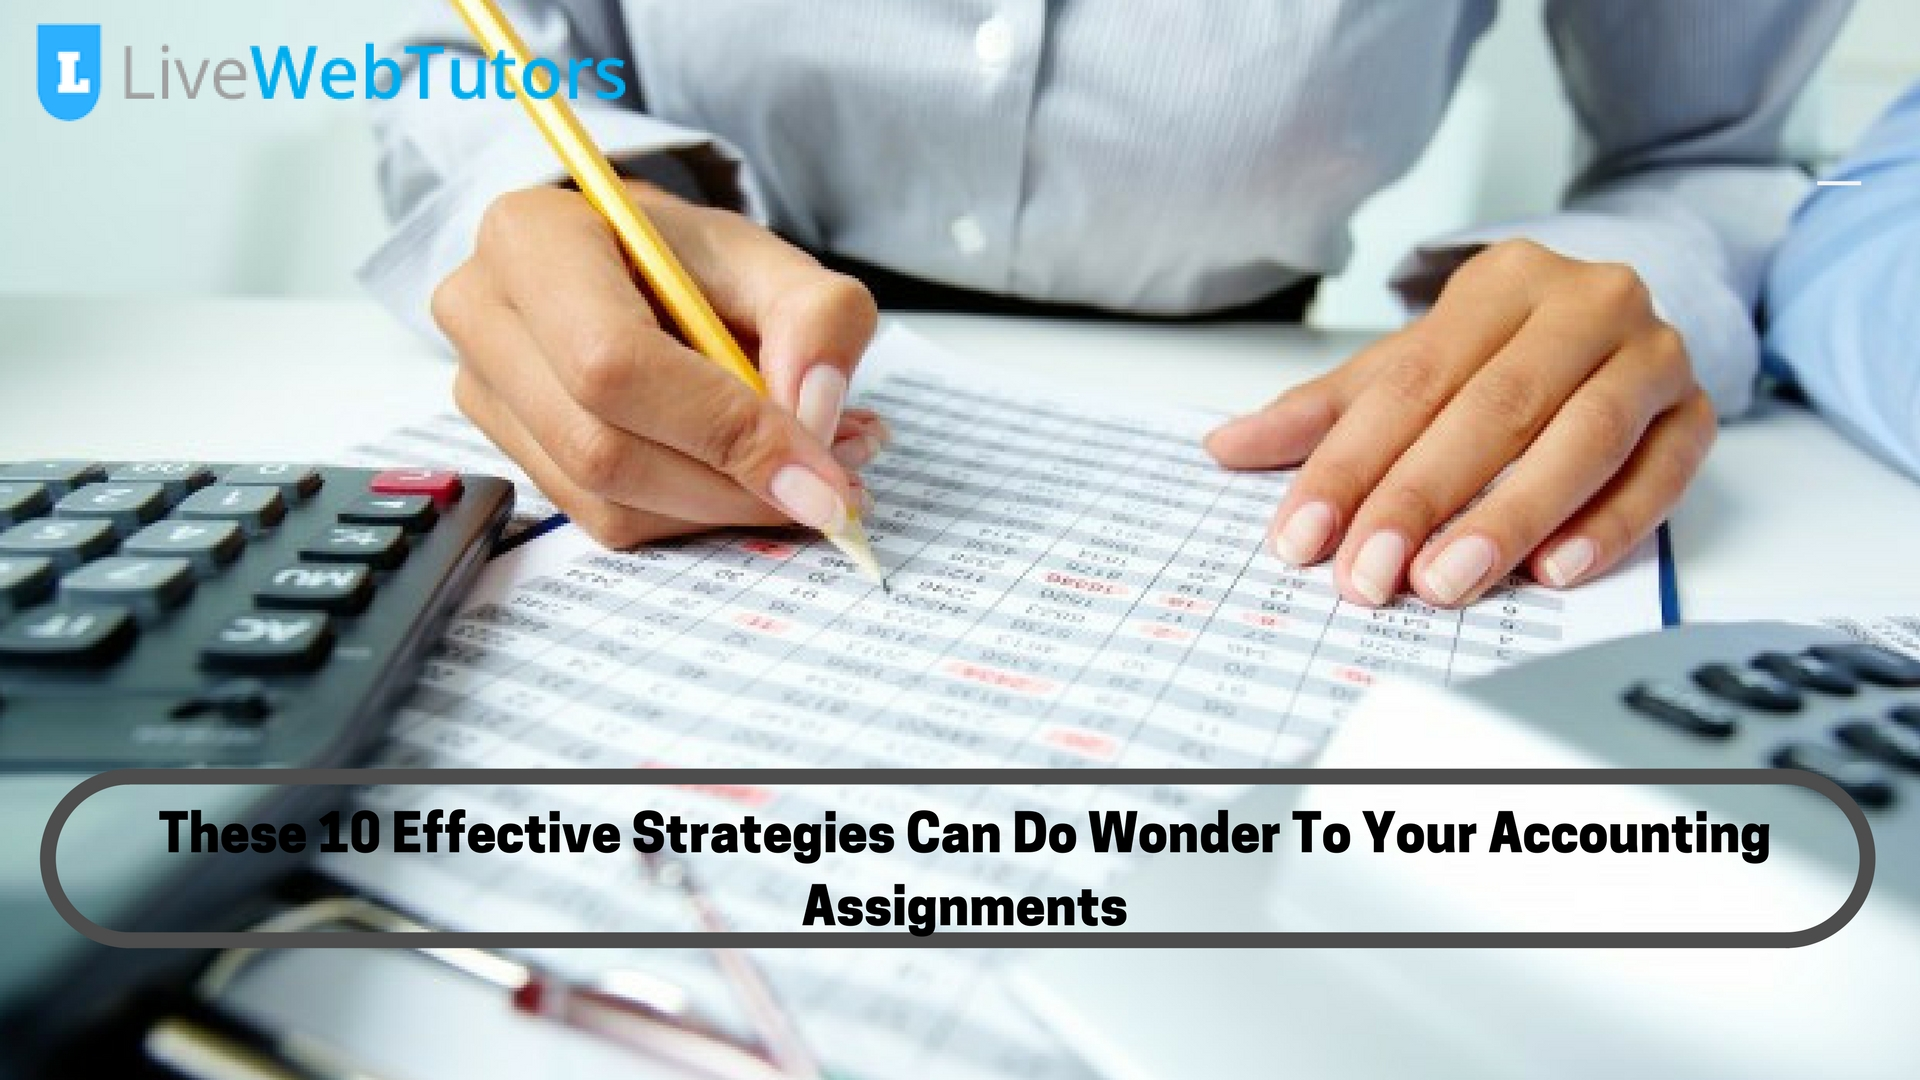 These 10 Effective Strategies Can Do Wonder To Your Accounting Assignments